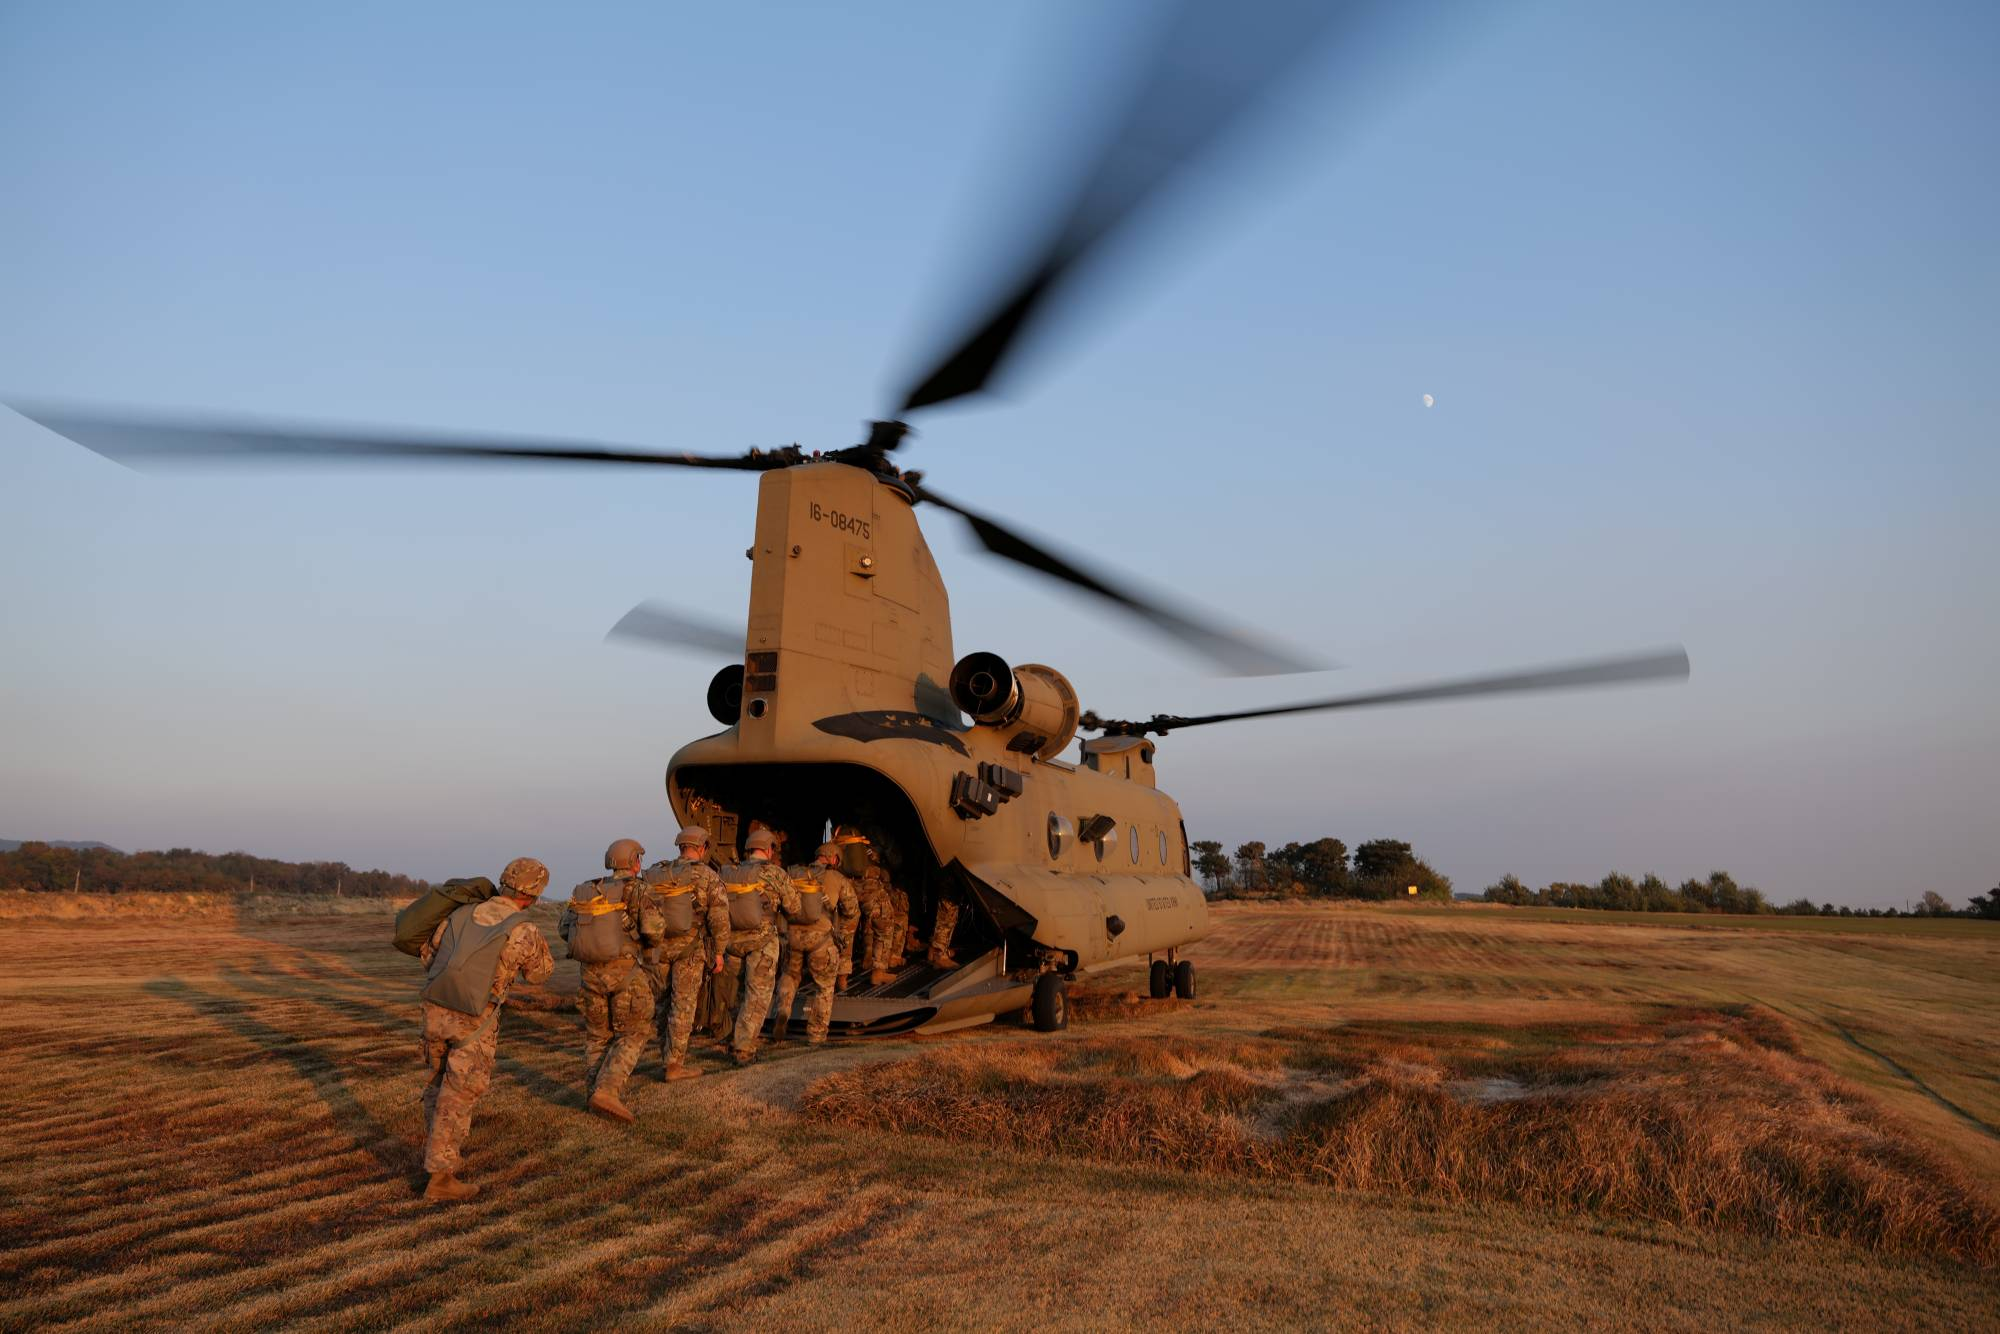 Members of South Korea and U.S. Special forces board a CH-47 Chinook helicopter during a joint military exercise in Gangwon province, South Korea, in November 2019.  | U.S. AIR FORCE / VIA REUTERS